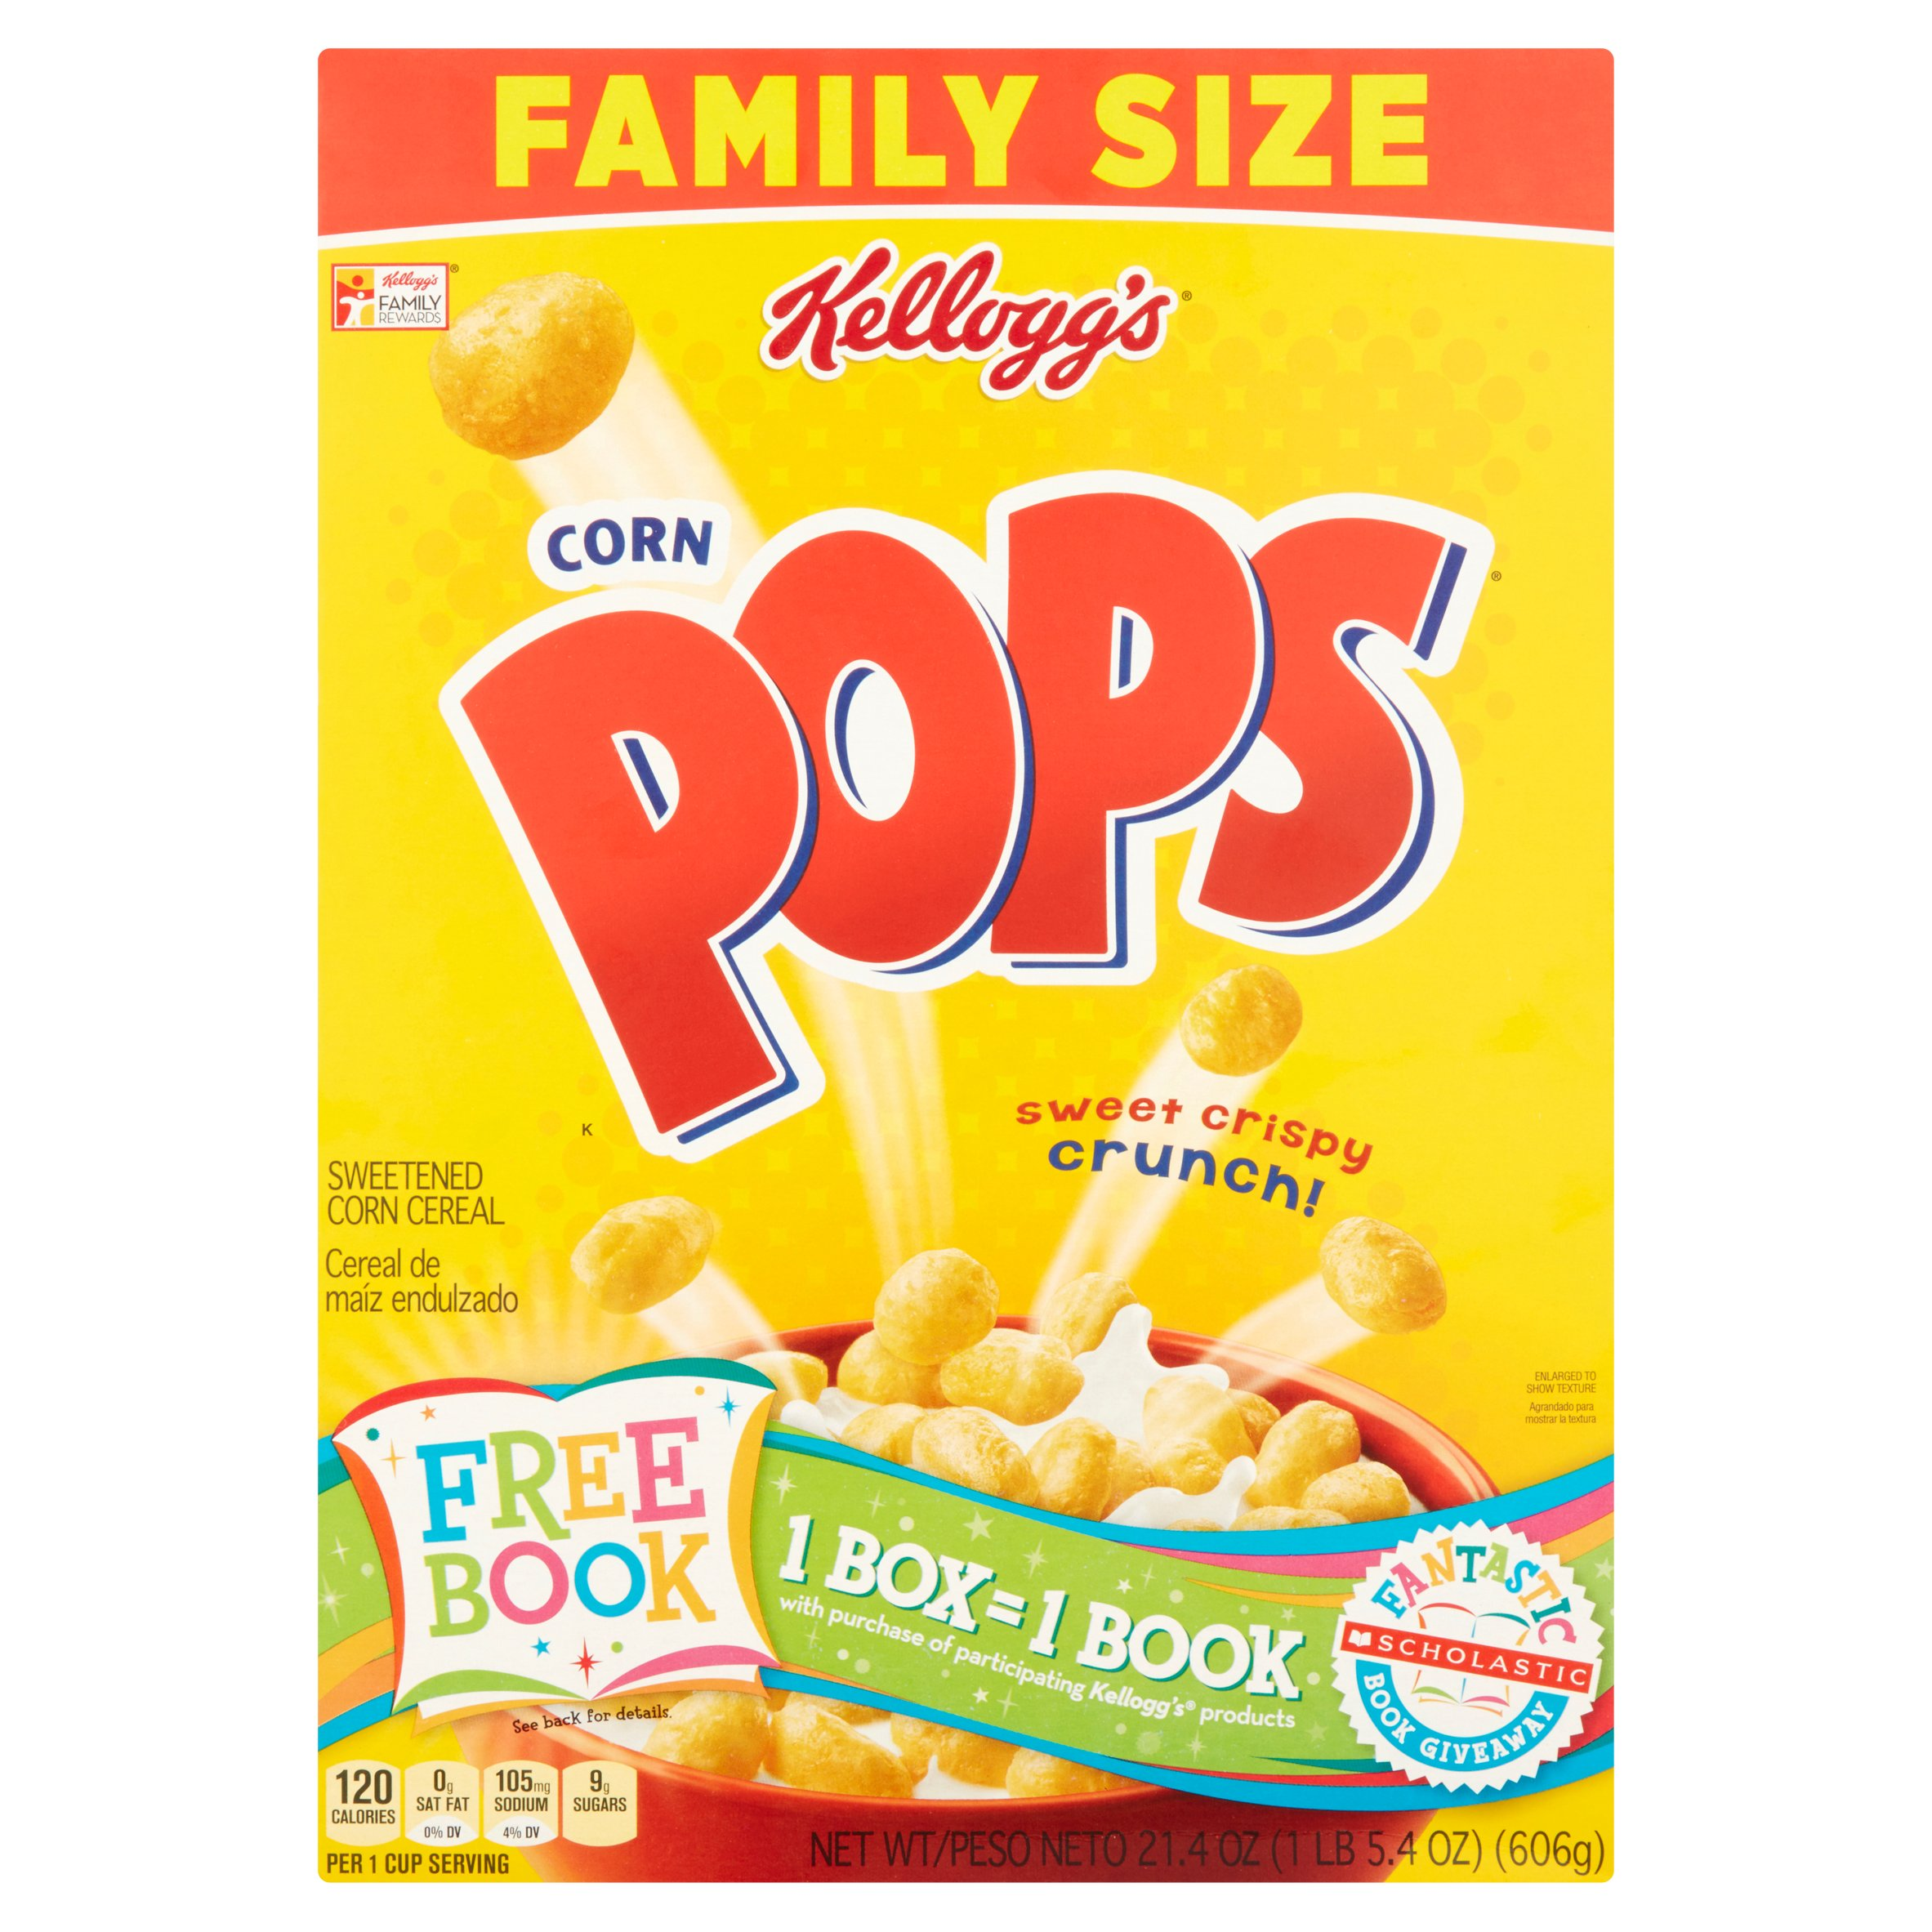 Kellogg's Corn Pops Sweetened Corn Cereal Family Size 21.4